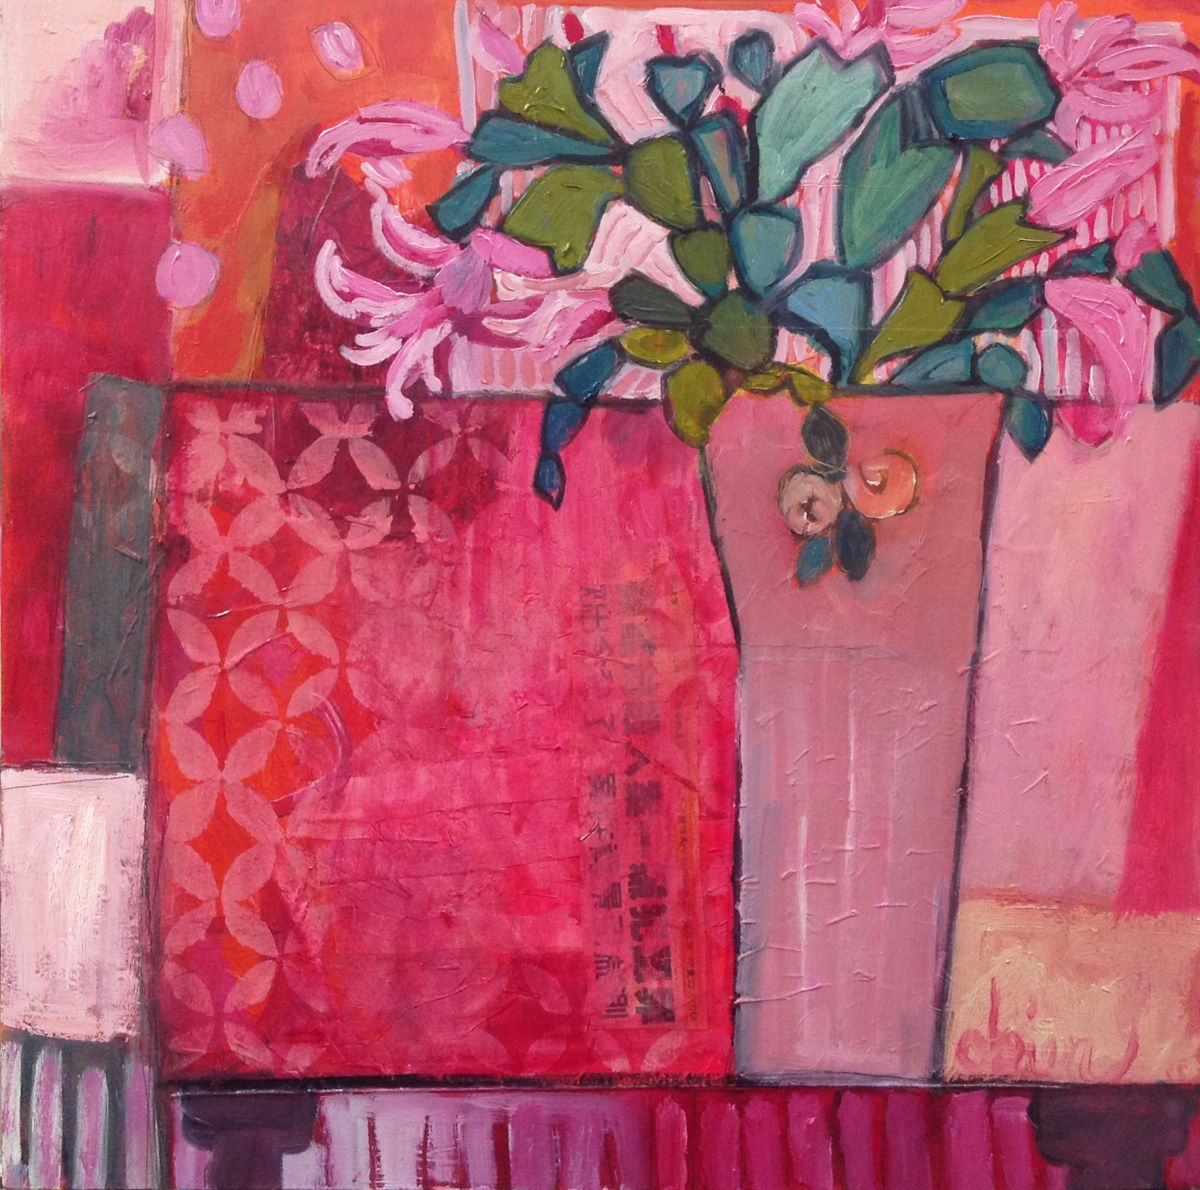 Gypsy table by annie obrien gonzales art of flower vases still life artists international contemporary expressionist still life art painting gypsy table by santa fe artist annie obrien gonzales reviewsmspy